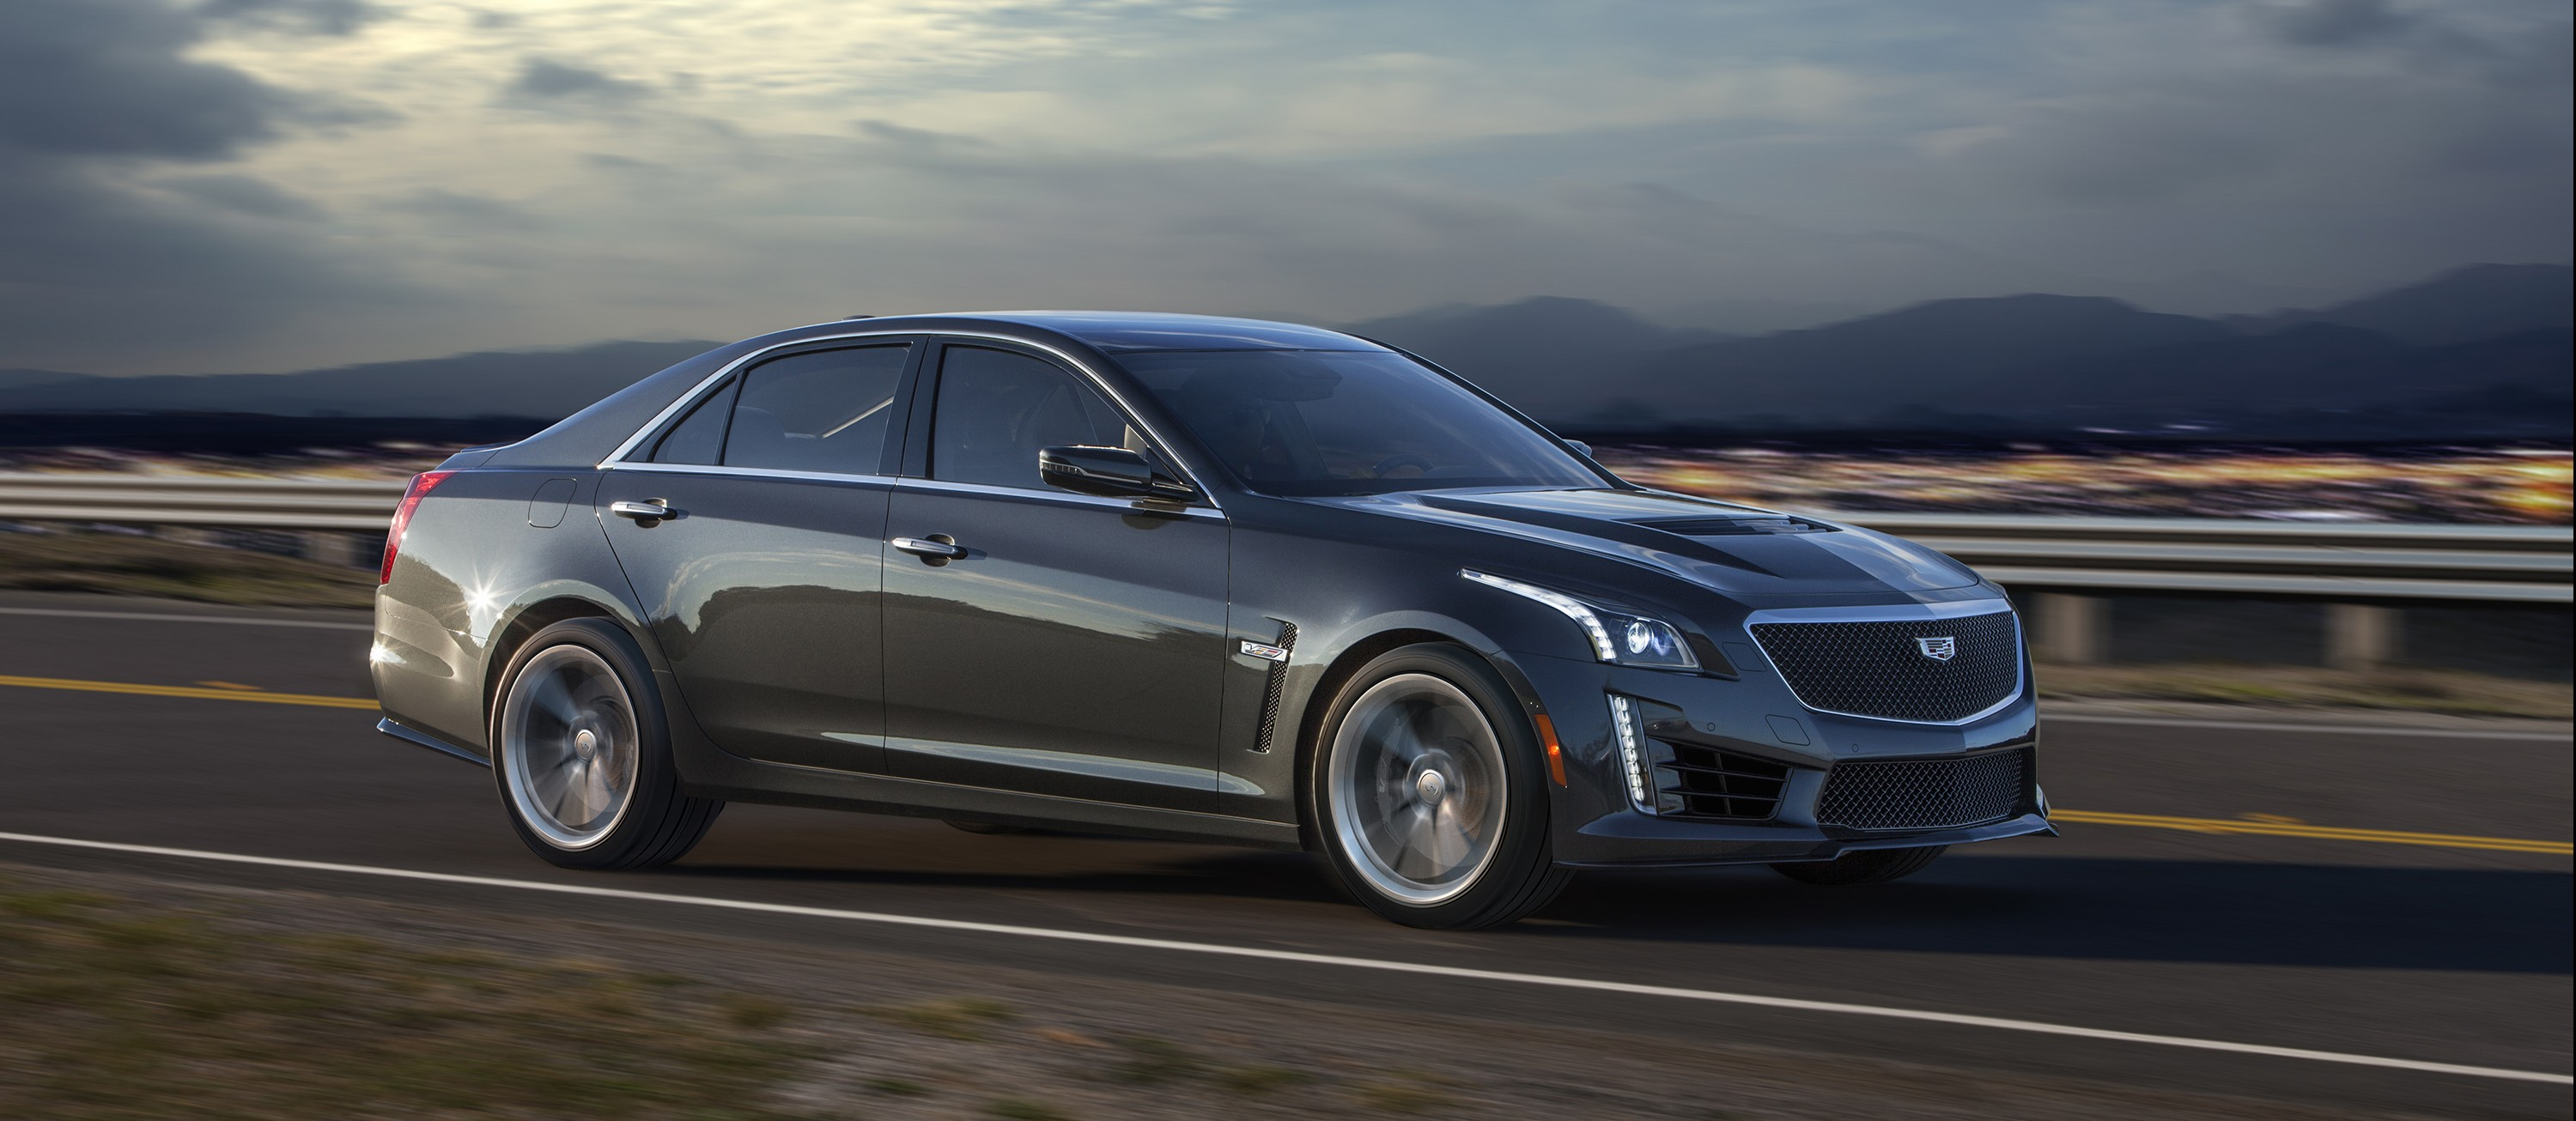 release ctsv cadillac v the hot cts date sedan market best in design is new price